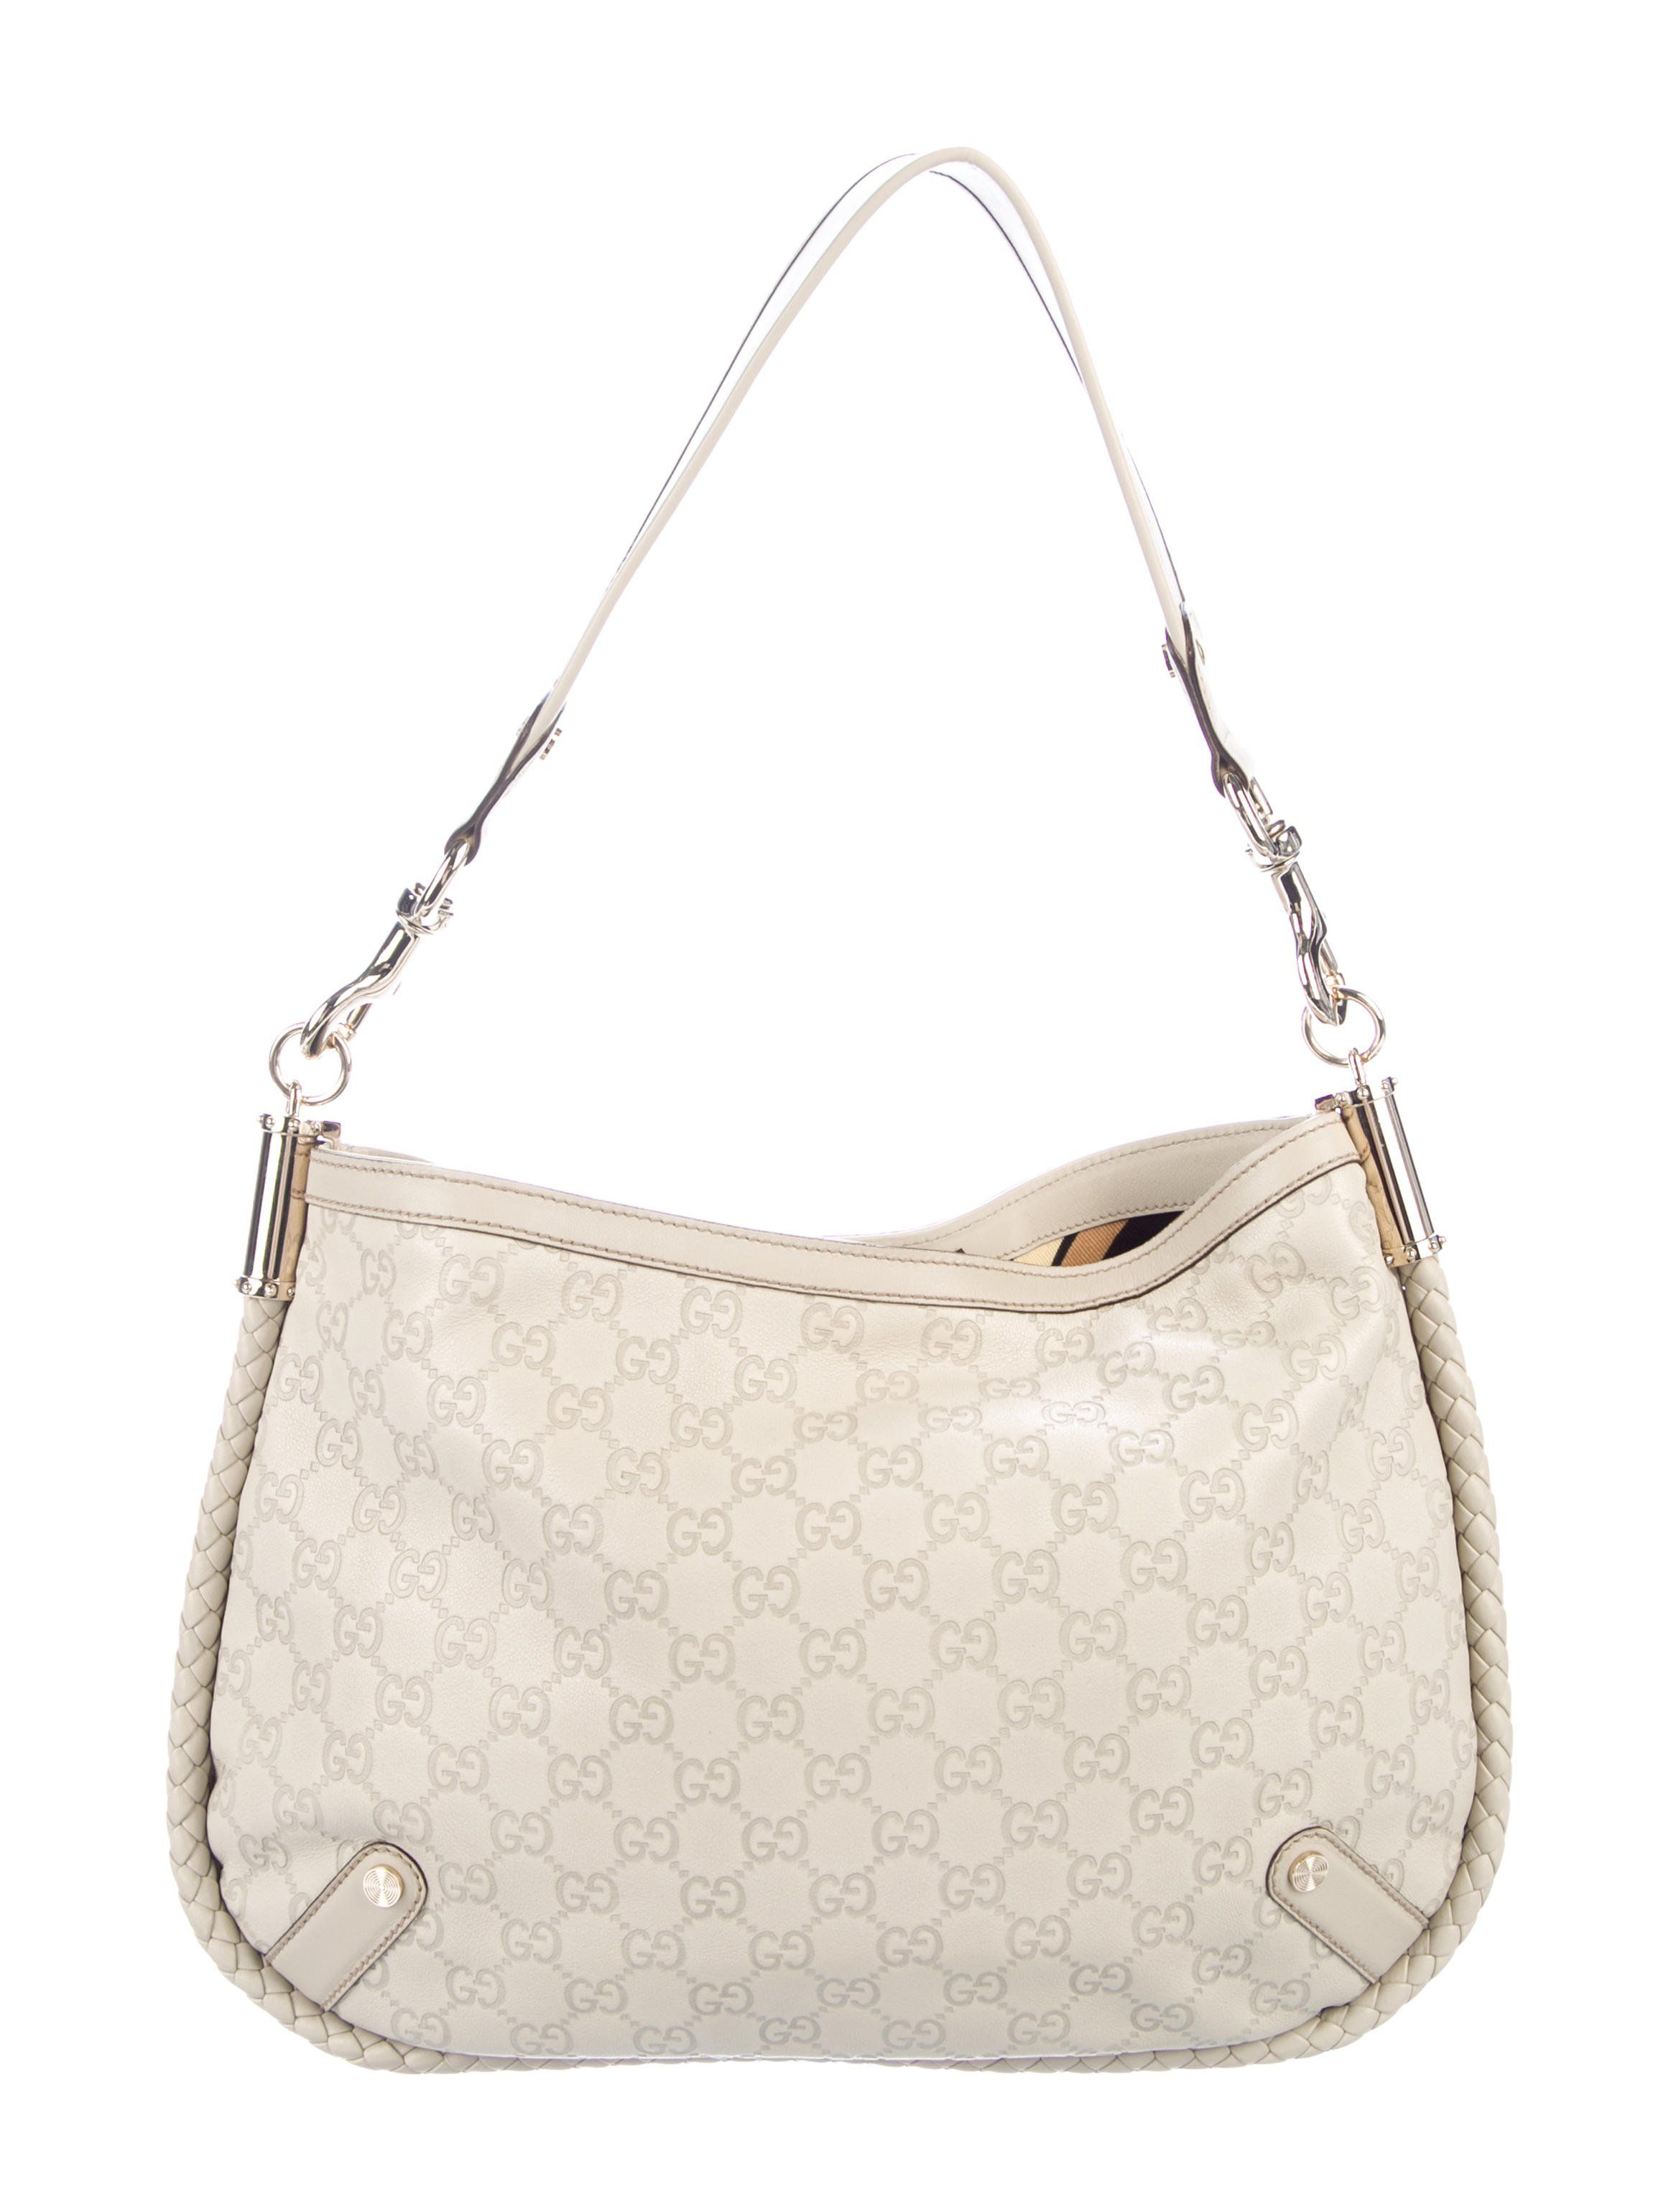 f5c66d5b6d7b Creme Guccissima leather Gucci Medium Britt hobo with gold-tone hardware,  single flat shoulder strap, single pocket at front with snap closure, black  and